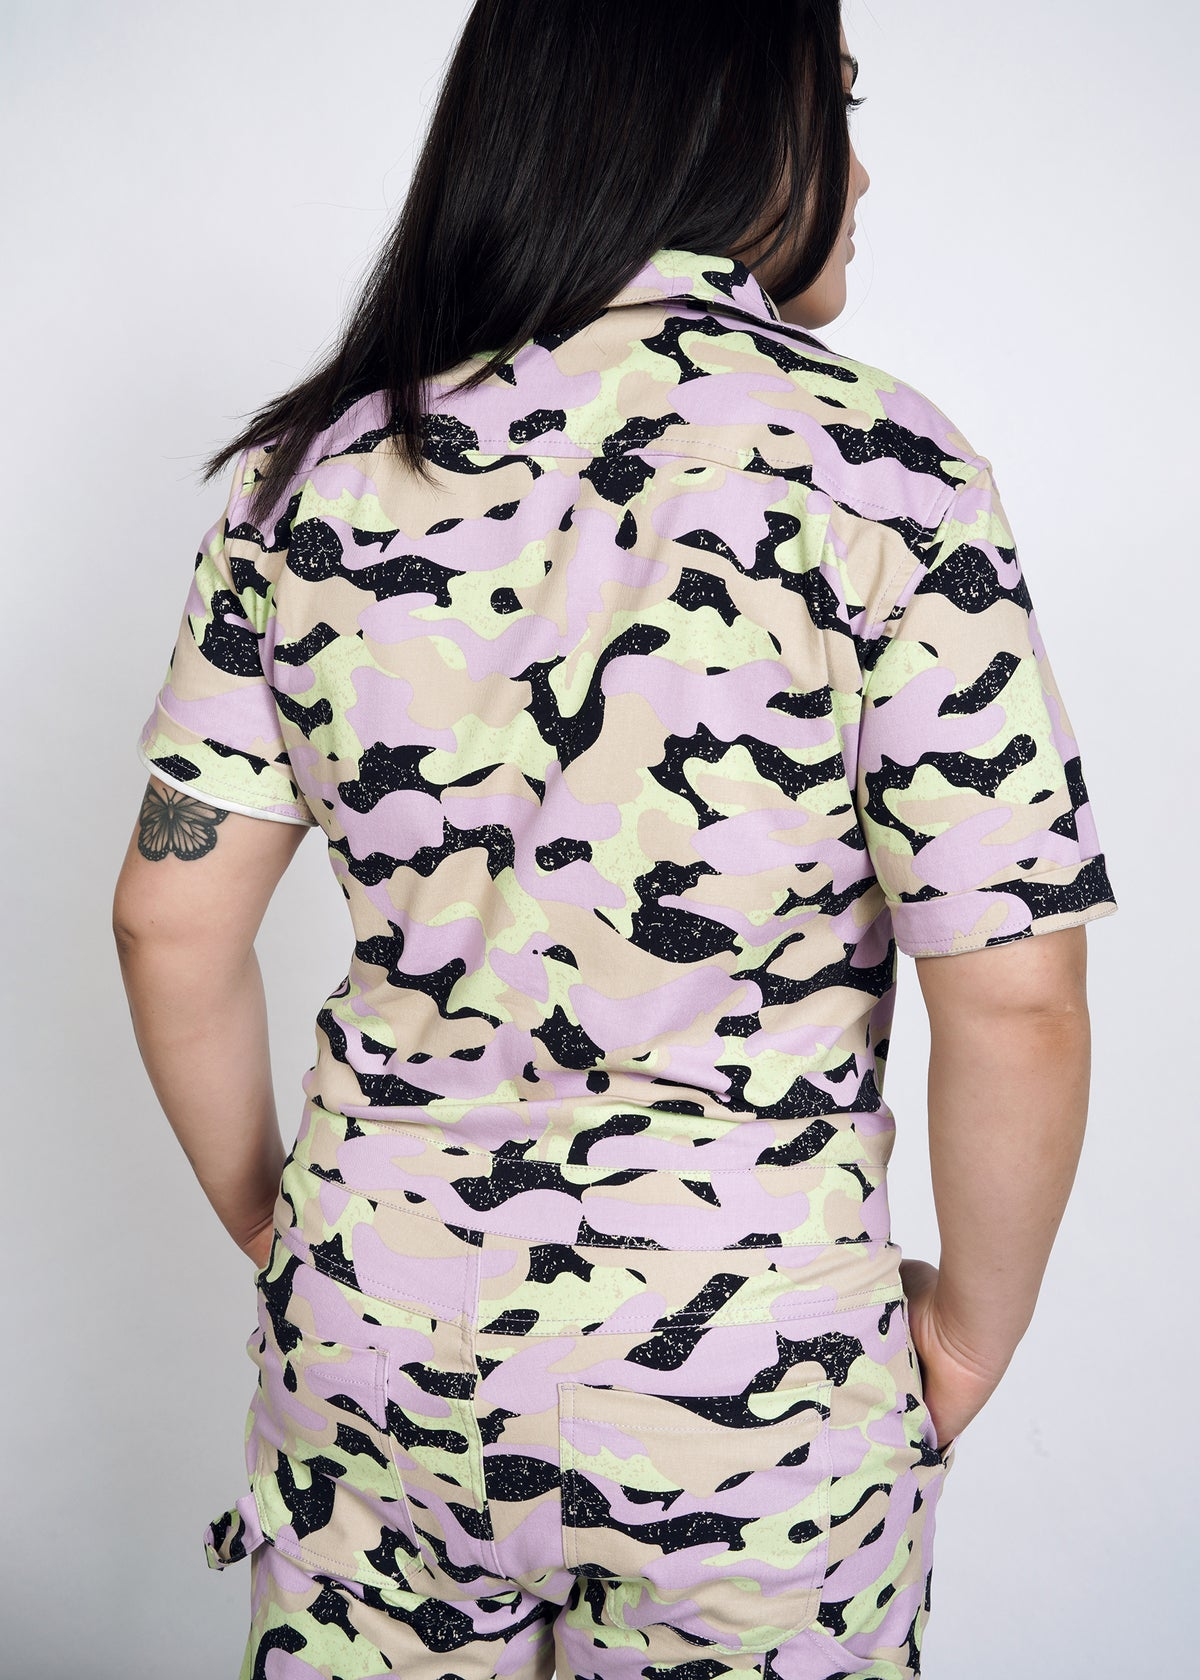 Model with back turned wearing lavender, celadon, black, and tan camouflage all over print short sleeve coverall jumpsuit in size L, with hands in pockets